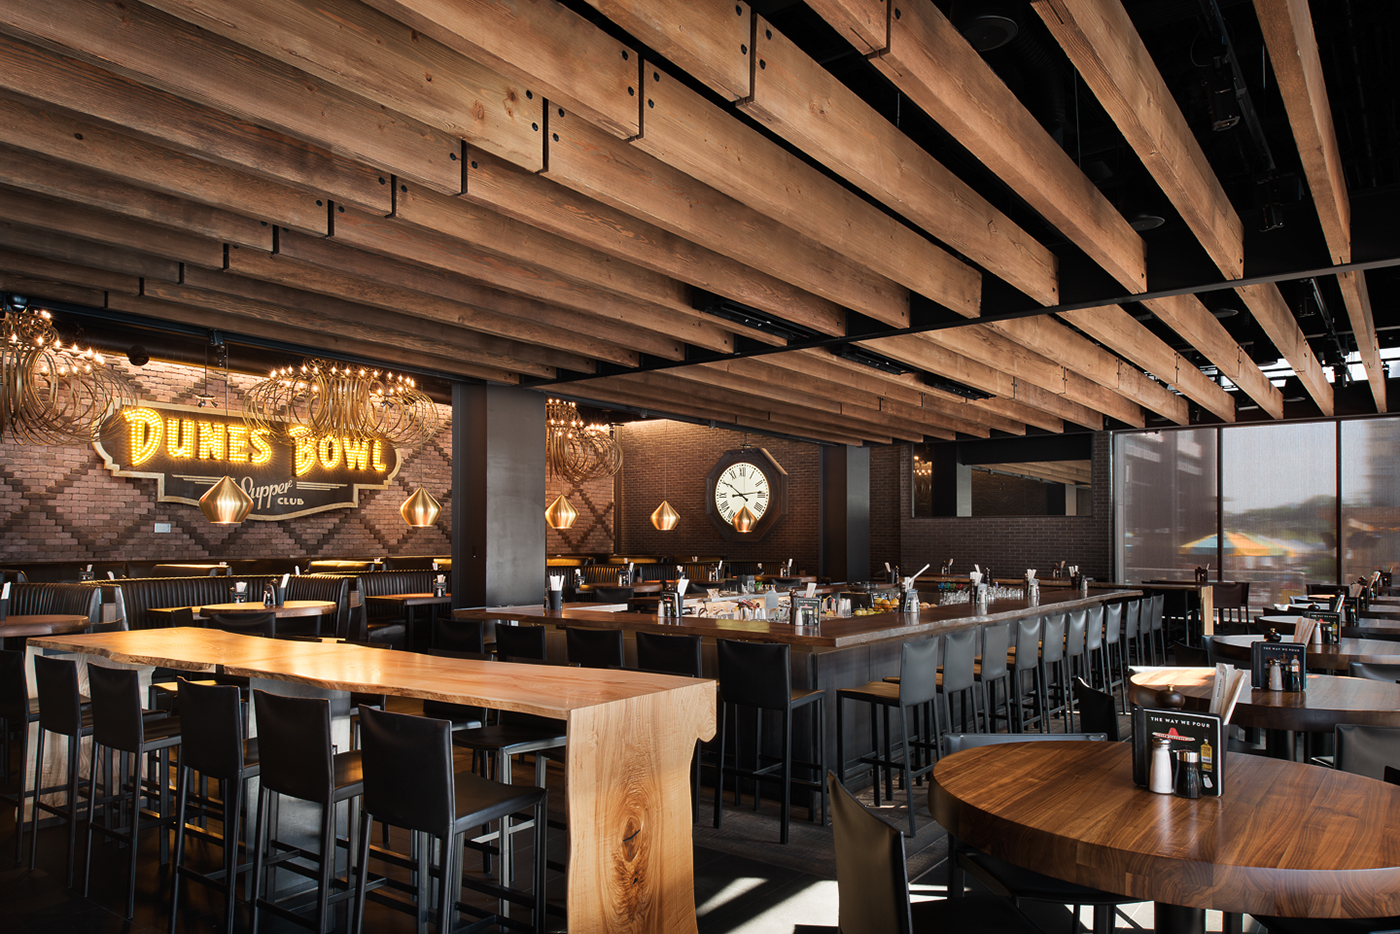 Joey restaurants lansdowne ottawa on behance